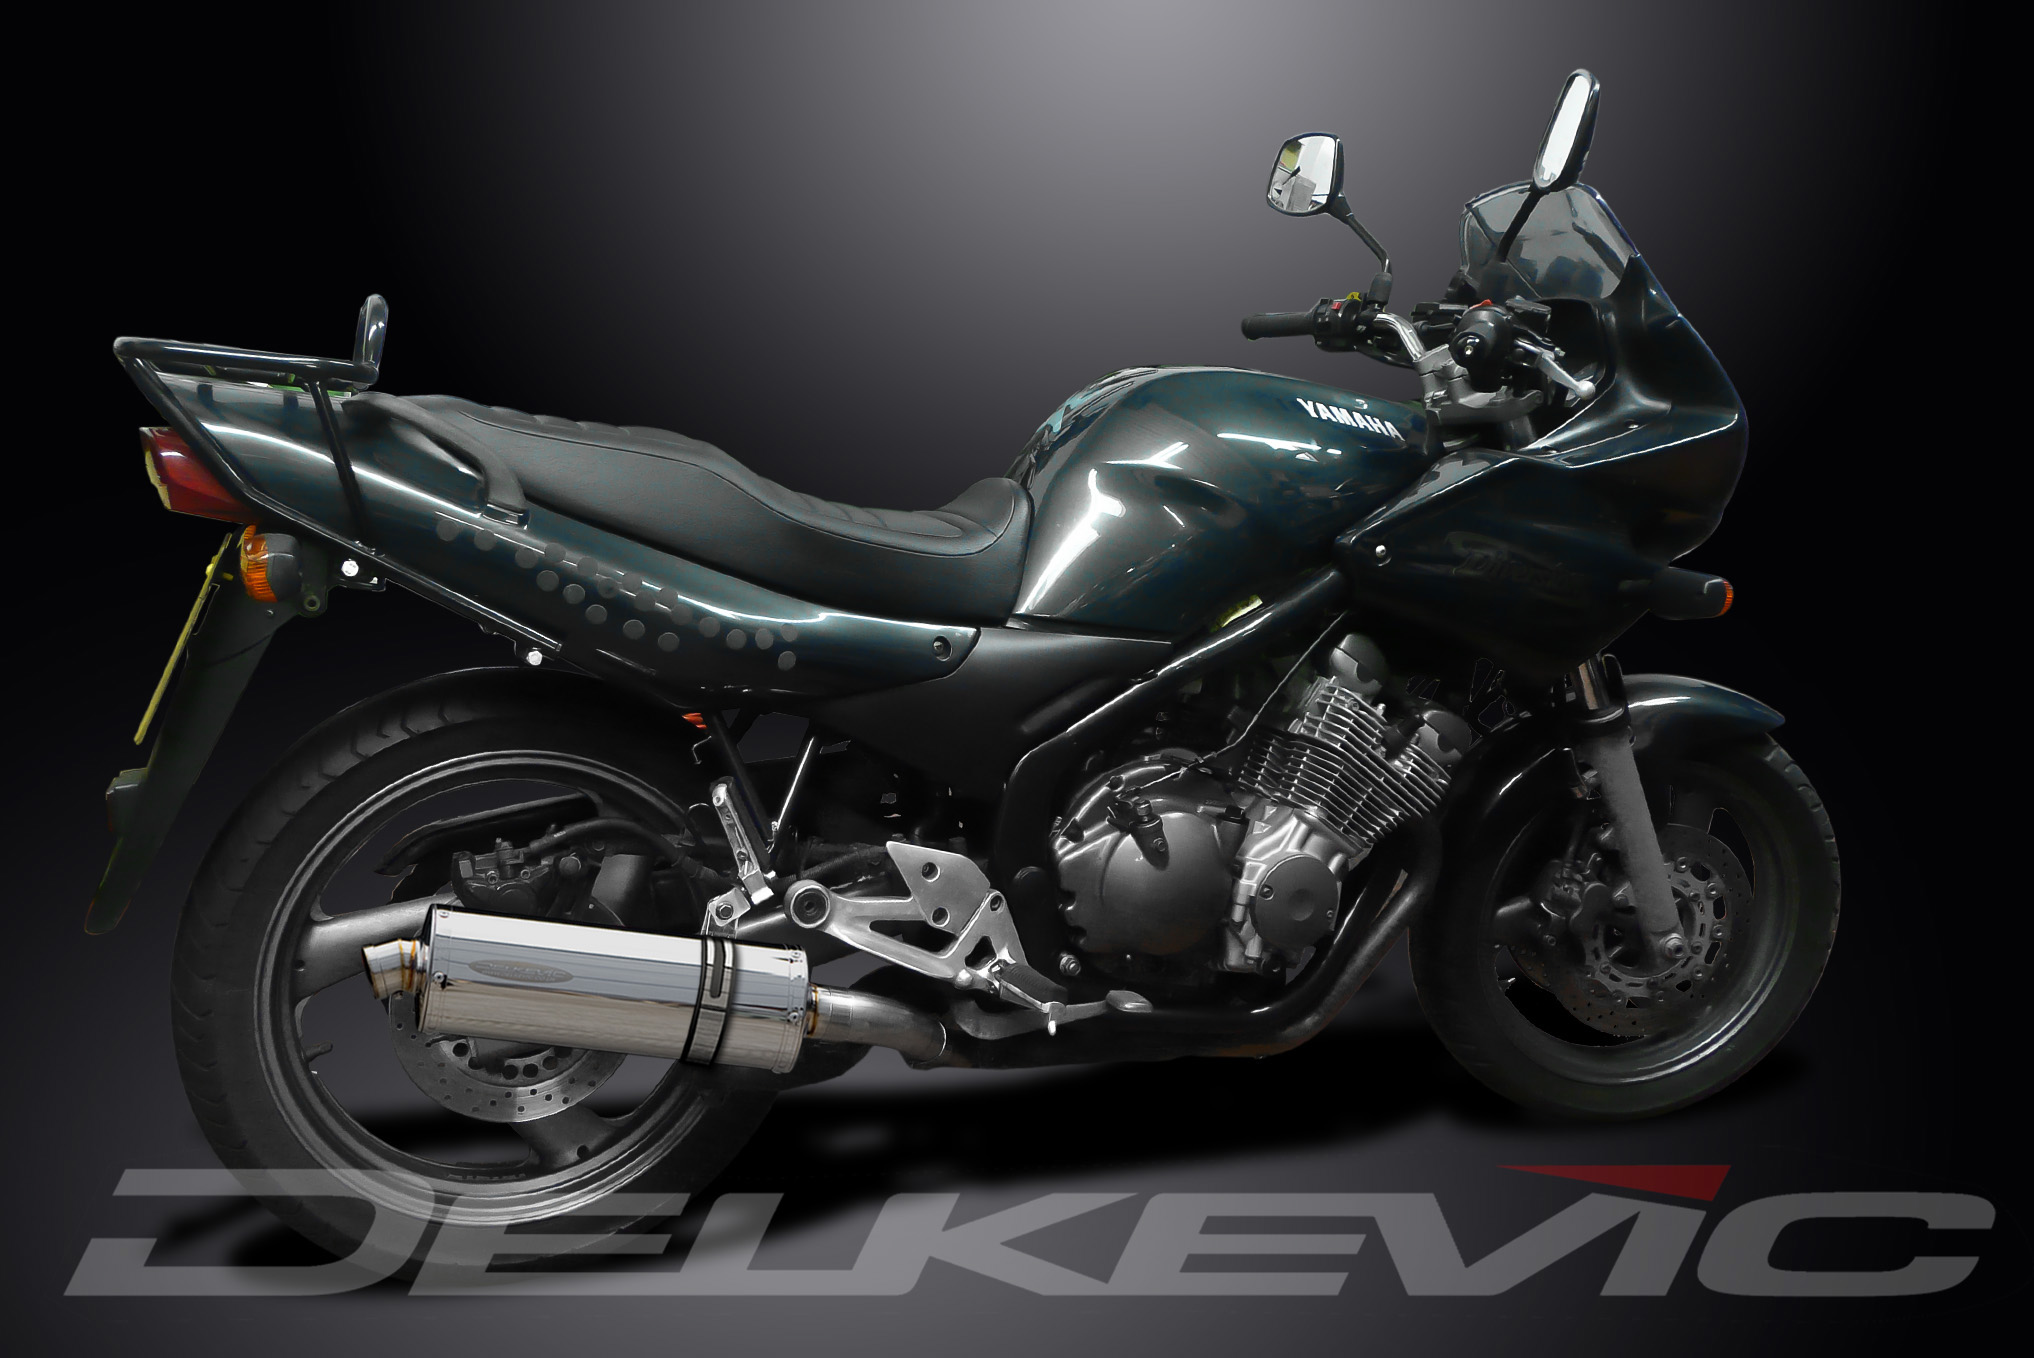 Yamaha xj600 diversion full stainless exhaust system with for Yamaha exhaust systems